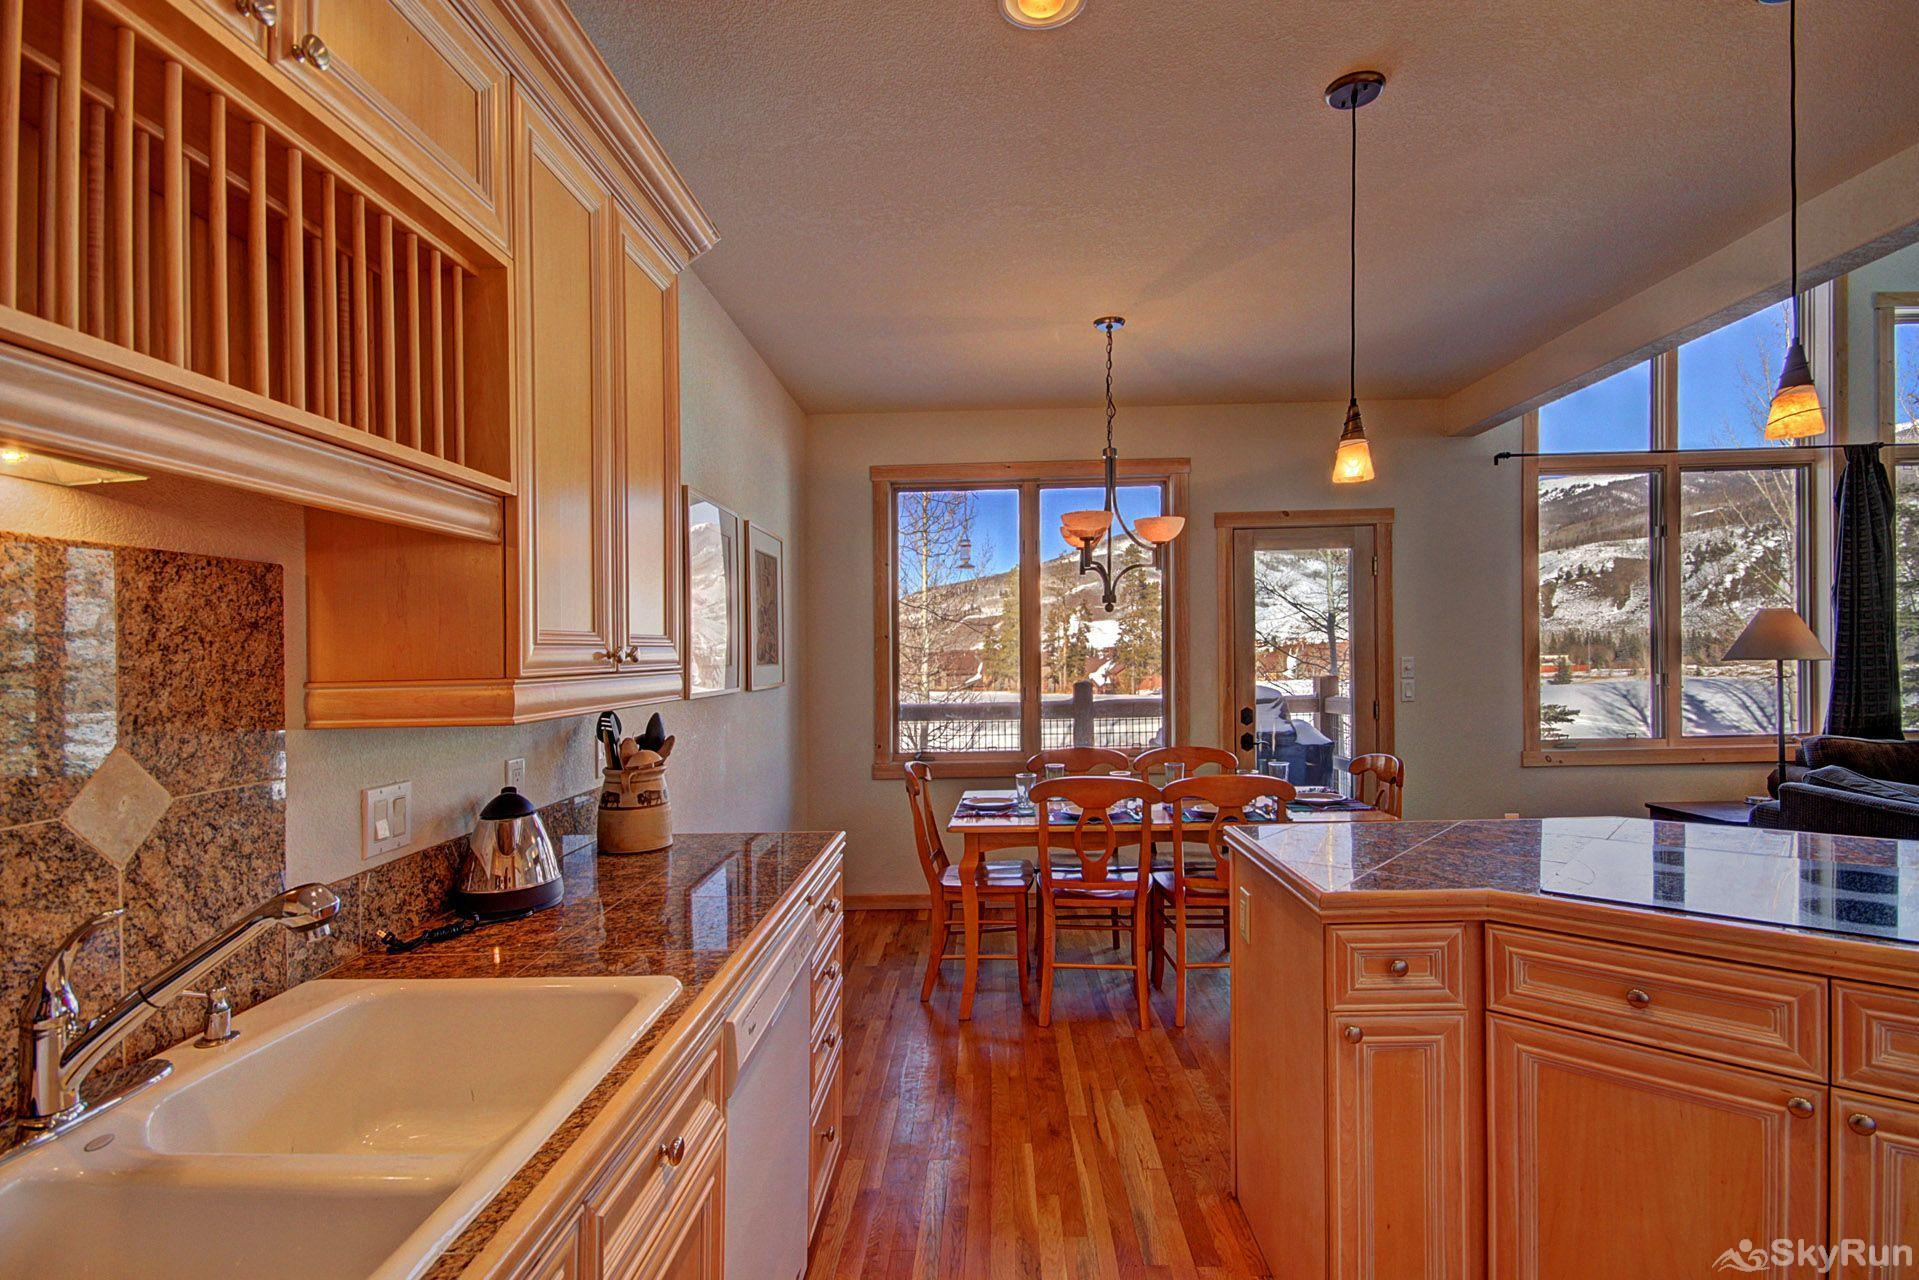 EN402 Ranch at Eagles Nest 3BR 4BA Kitchen with views